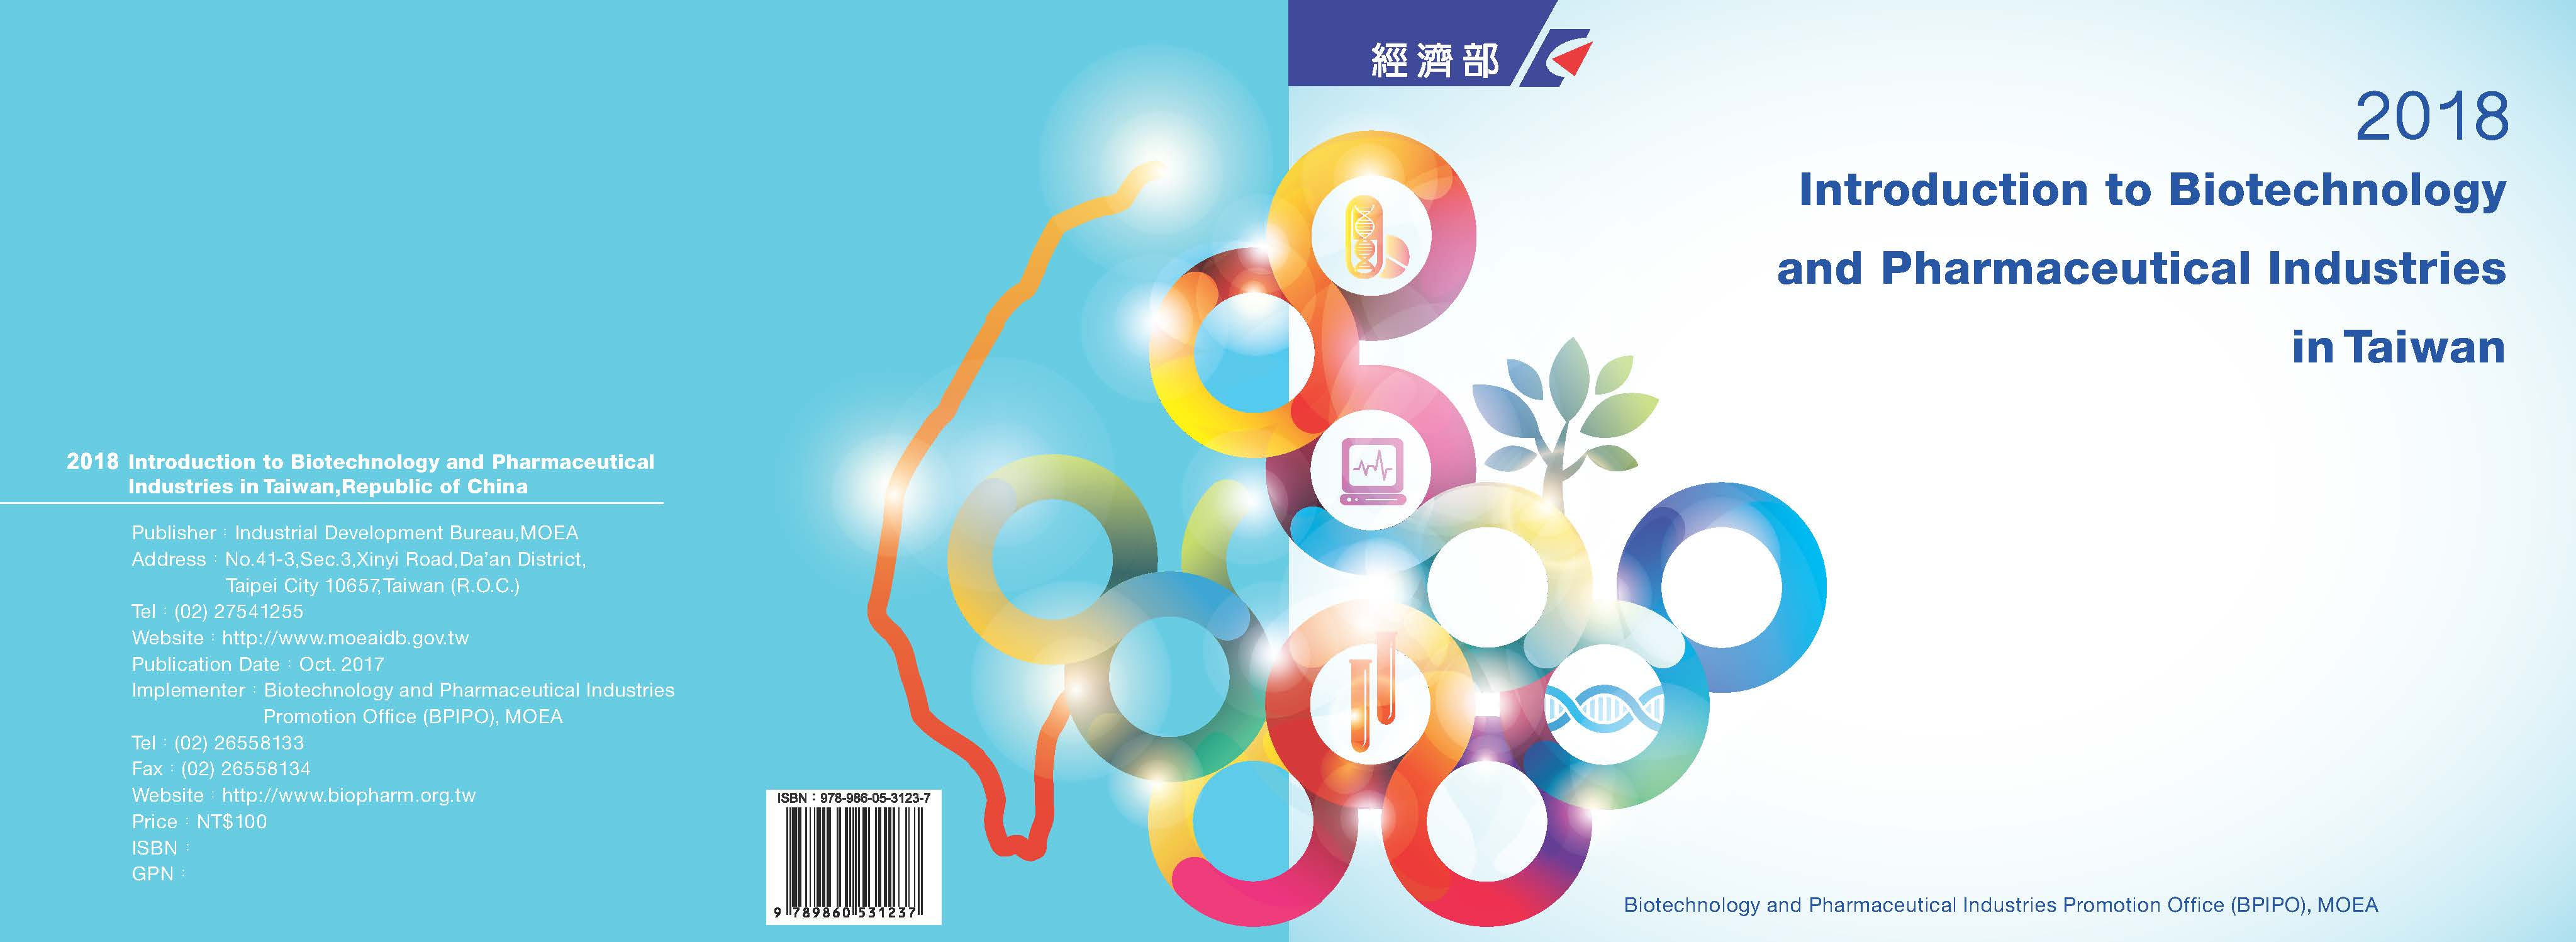 2018 Introduction to Biotechnology and Pharmaceutical Industries in Taiwan